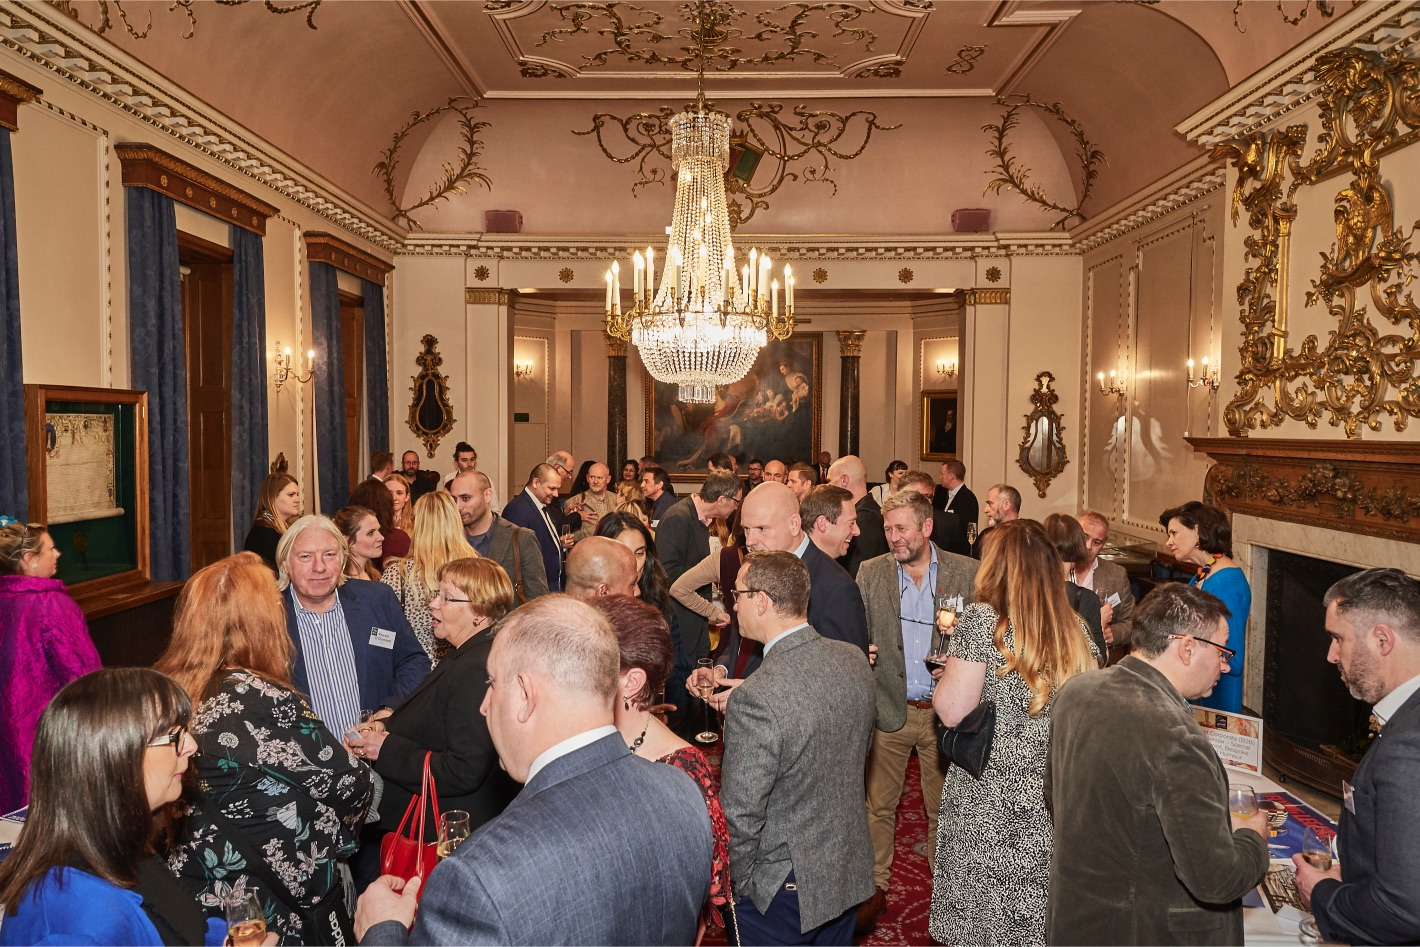 Above: The Calies reception at the historic Stationers' Hall.